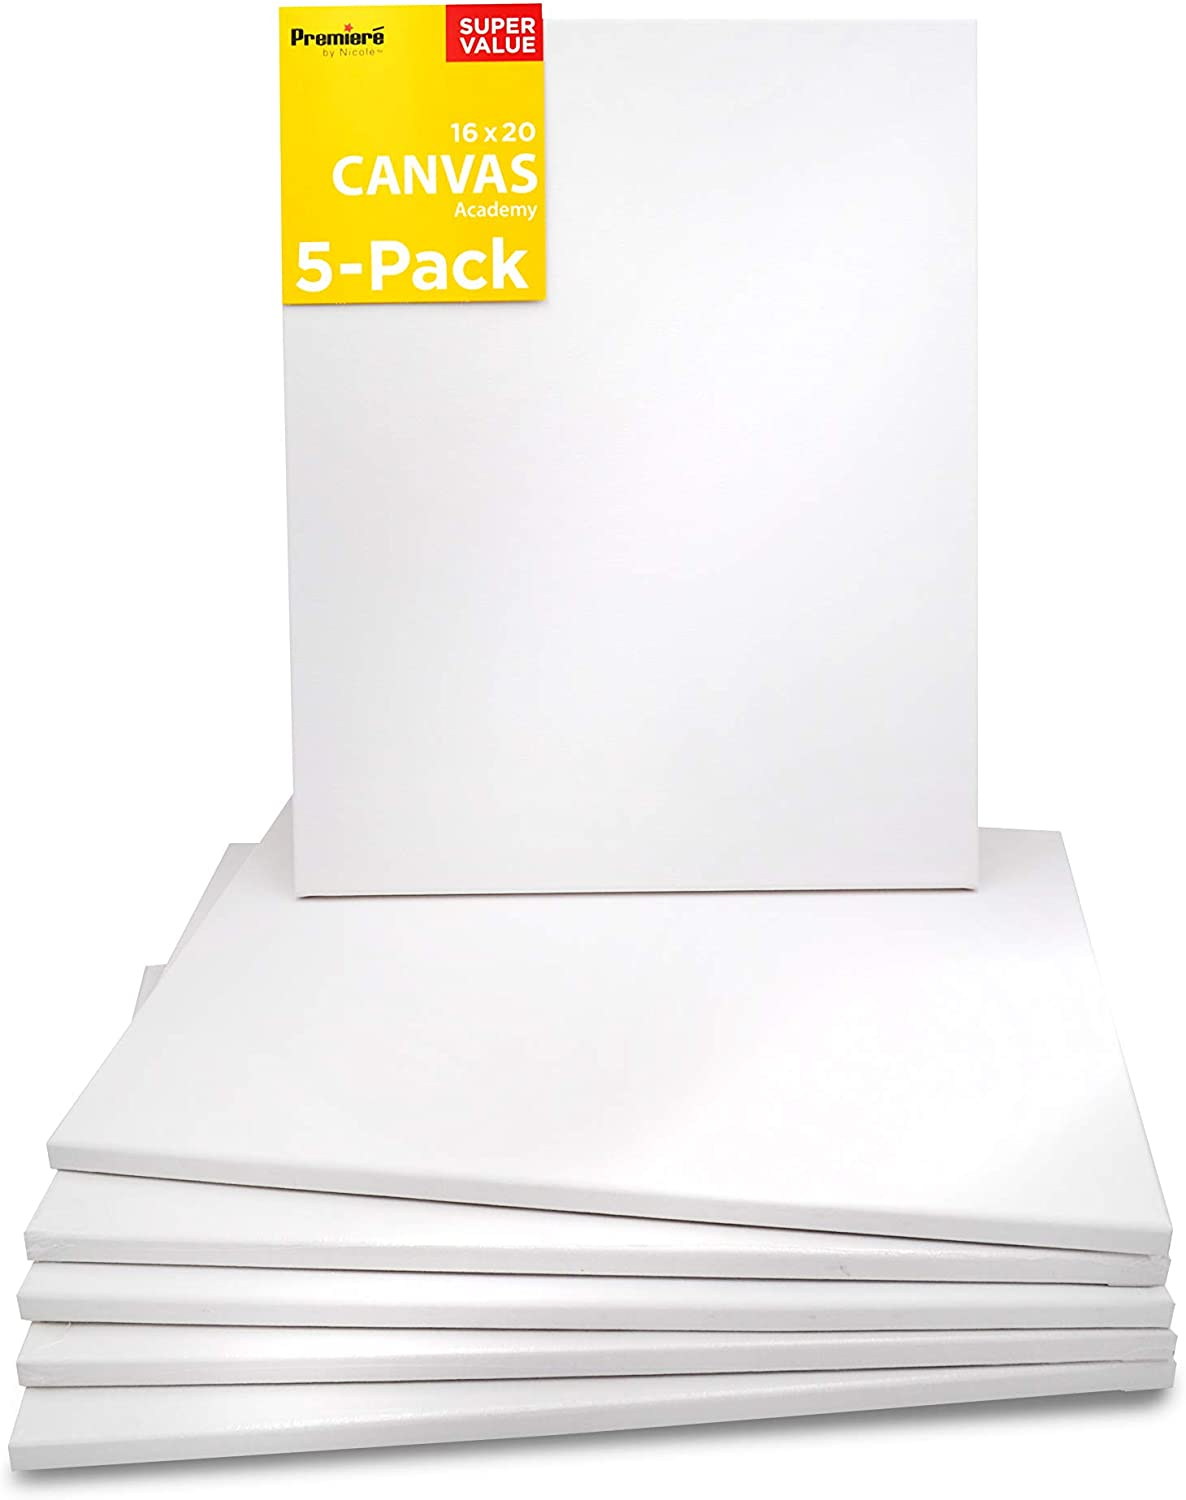 5 Pack Stretched Canvas for Painting, 16x20 | Bulk Value Pack Plain White Rectangular Canvases | Triple Acrylic Gesso Primed | Art Supplies for Acrylics, Oil Painting, DIY Wall Décor